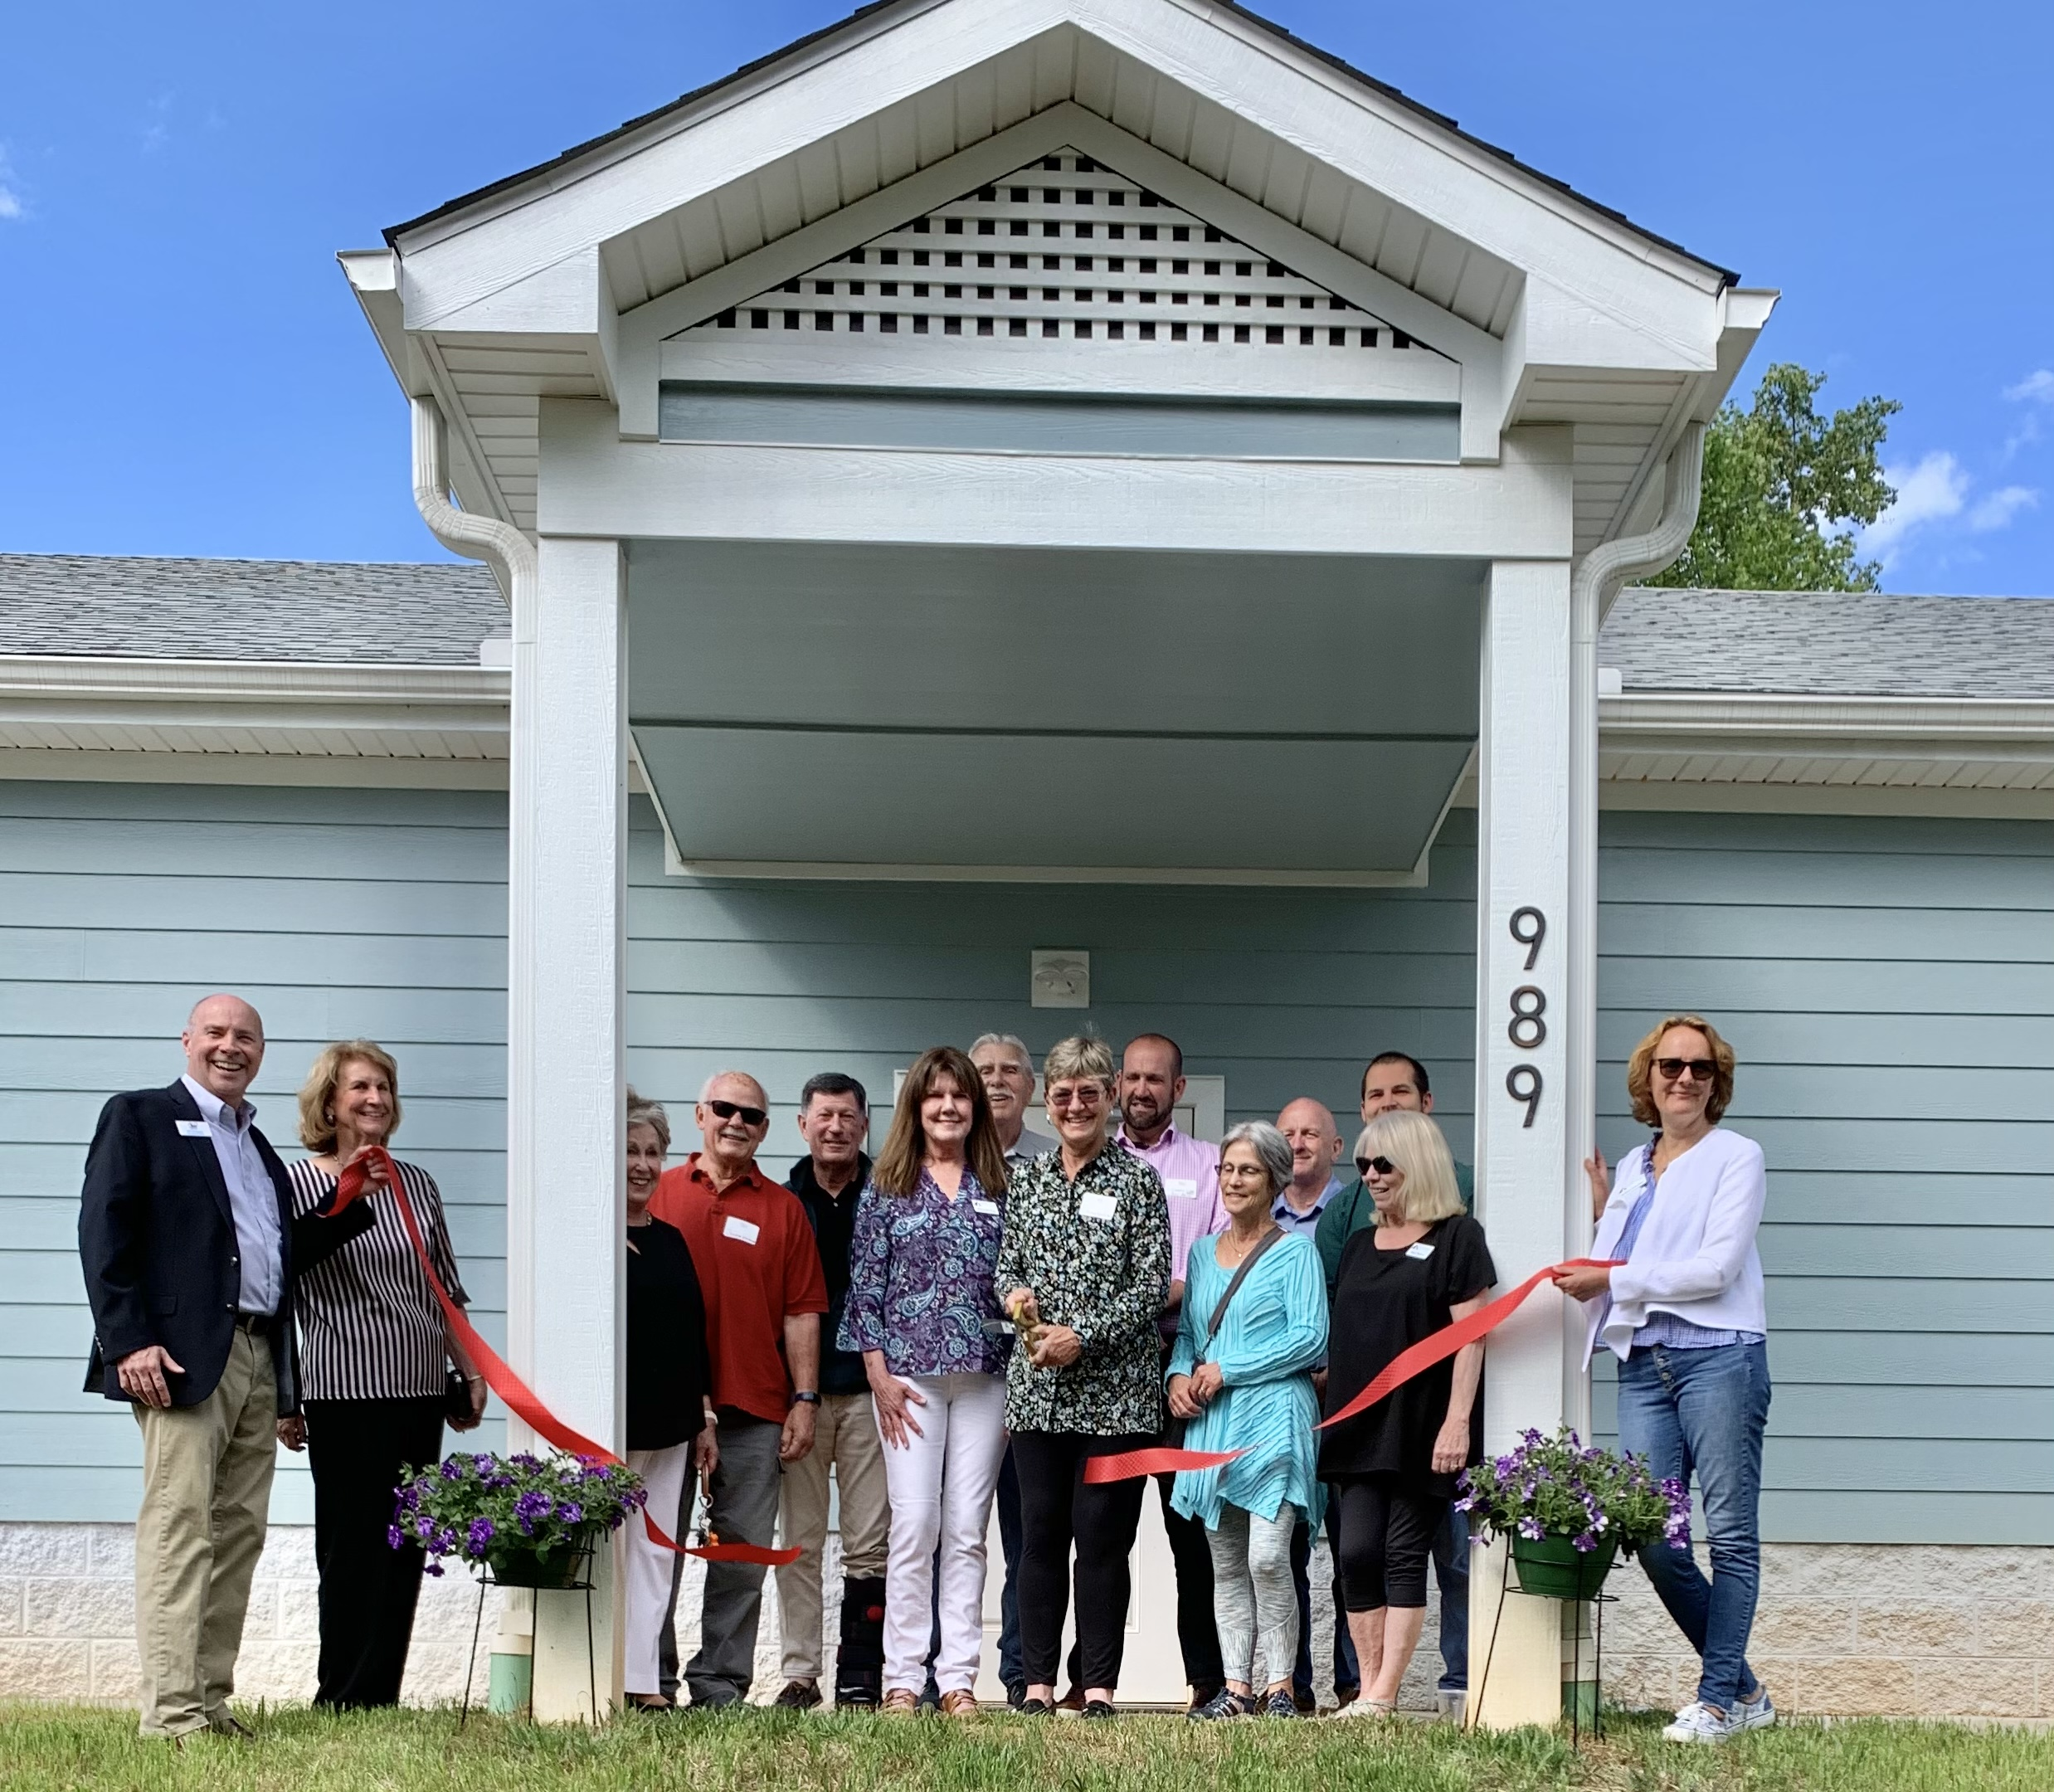 Foothills Humane Society Celebrates the Completion of New Digs for Dogs Building with Ribbon Cutting Ceremony